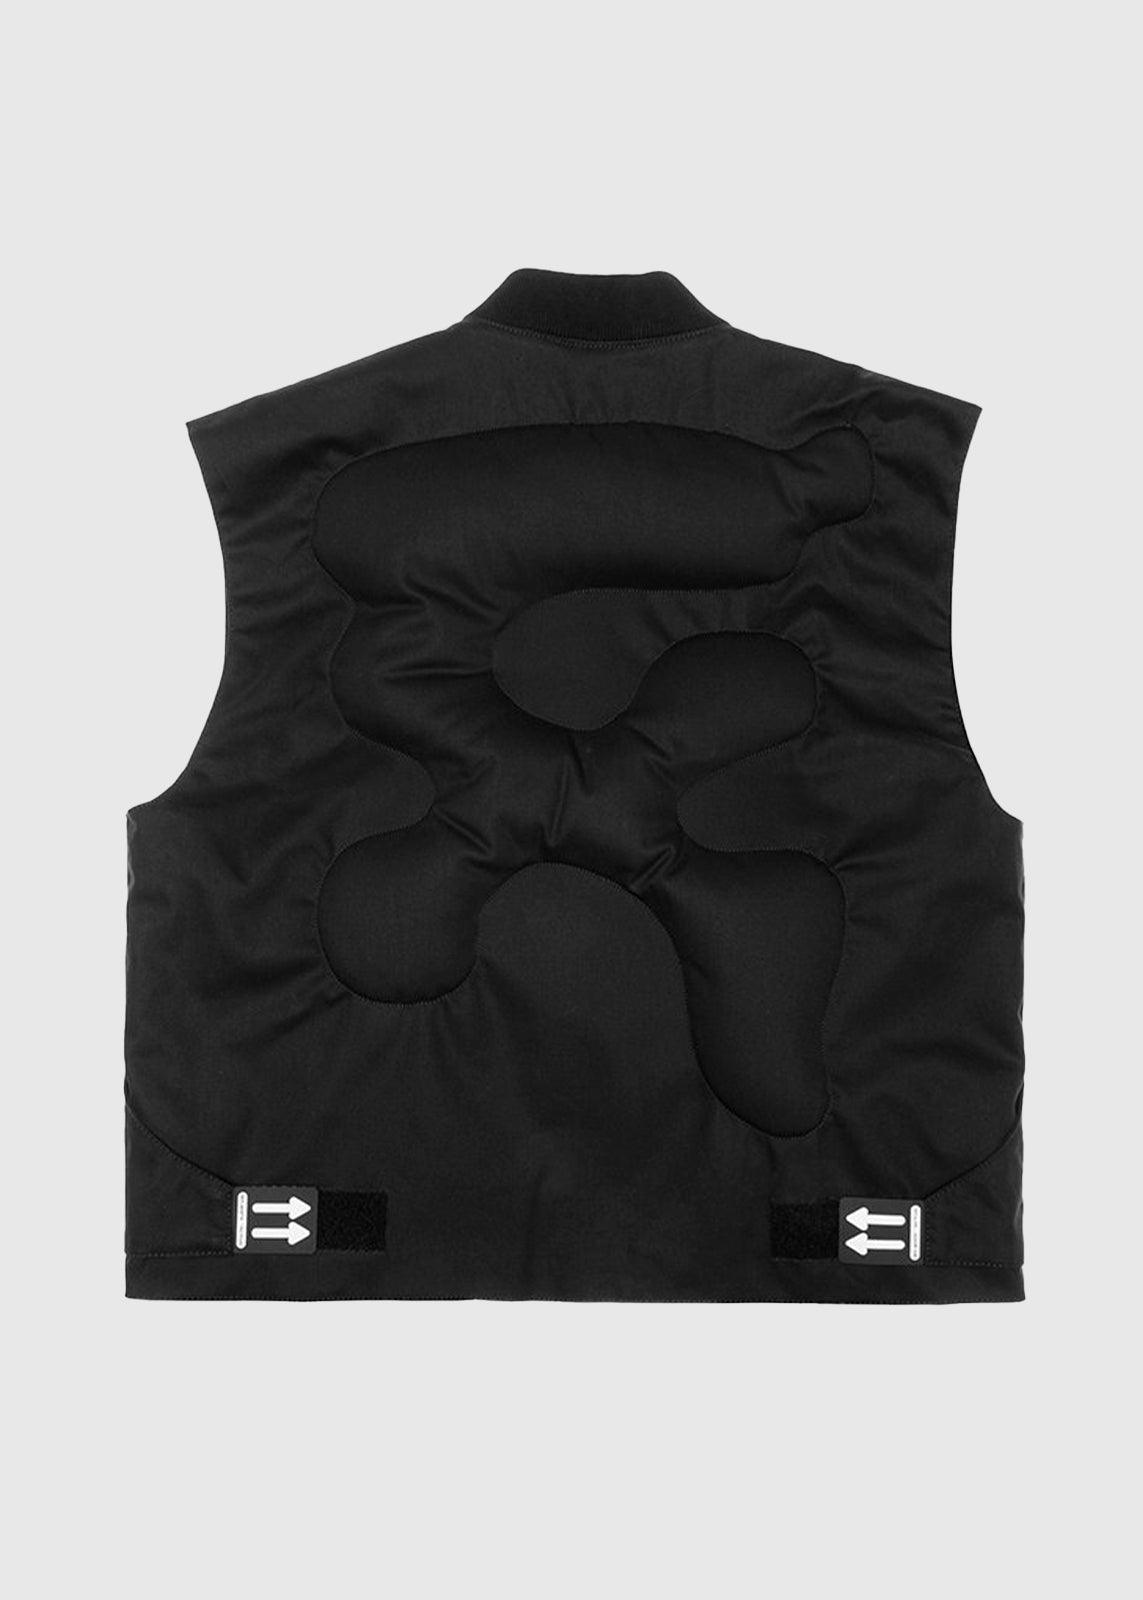 OFF-WHITE: TACTICAL VEST [BLACK]